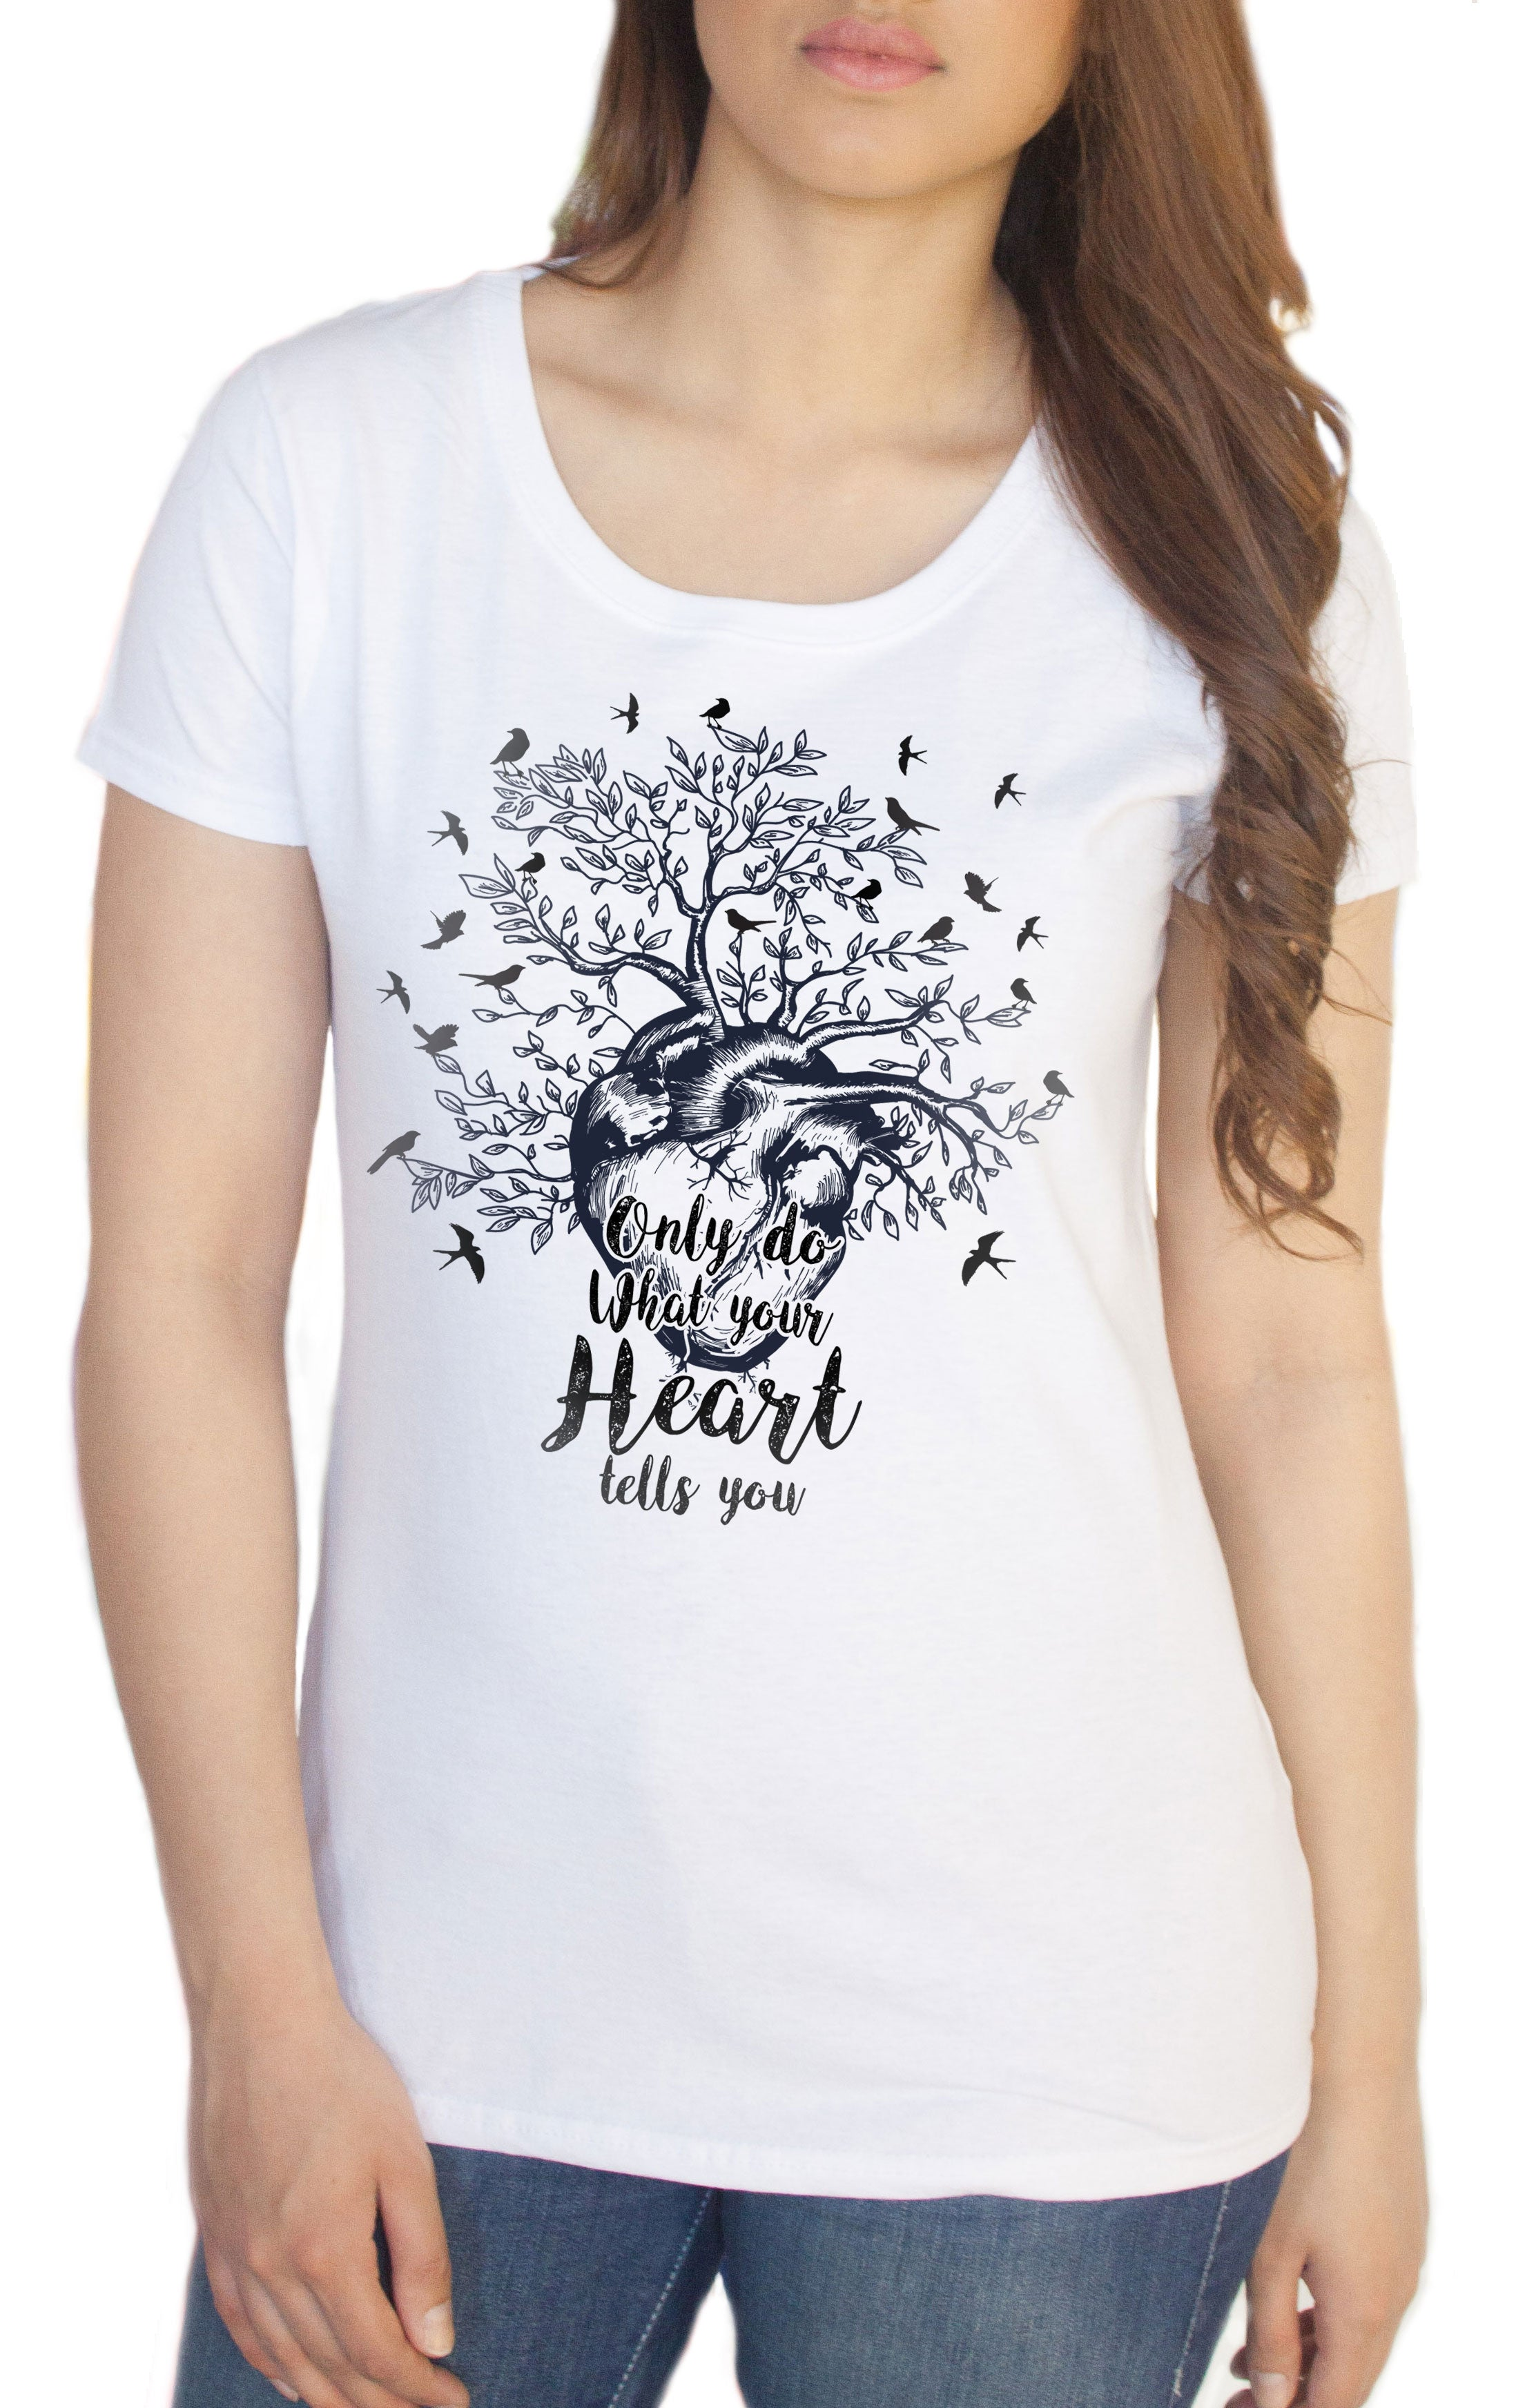 TS909 Women's Tee /'Only do what your heart tells you/' Birds Love Heart Bird Tree